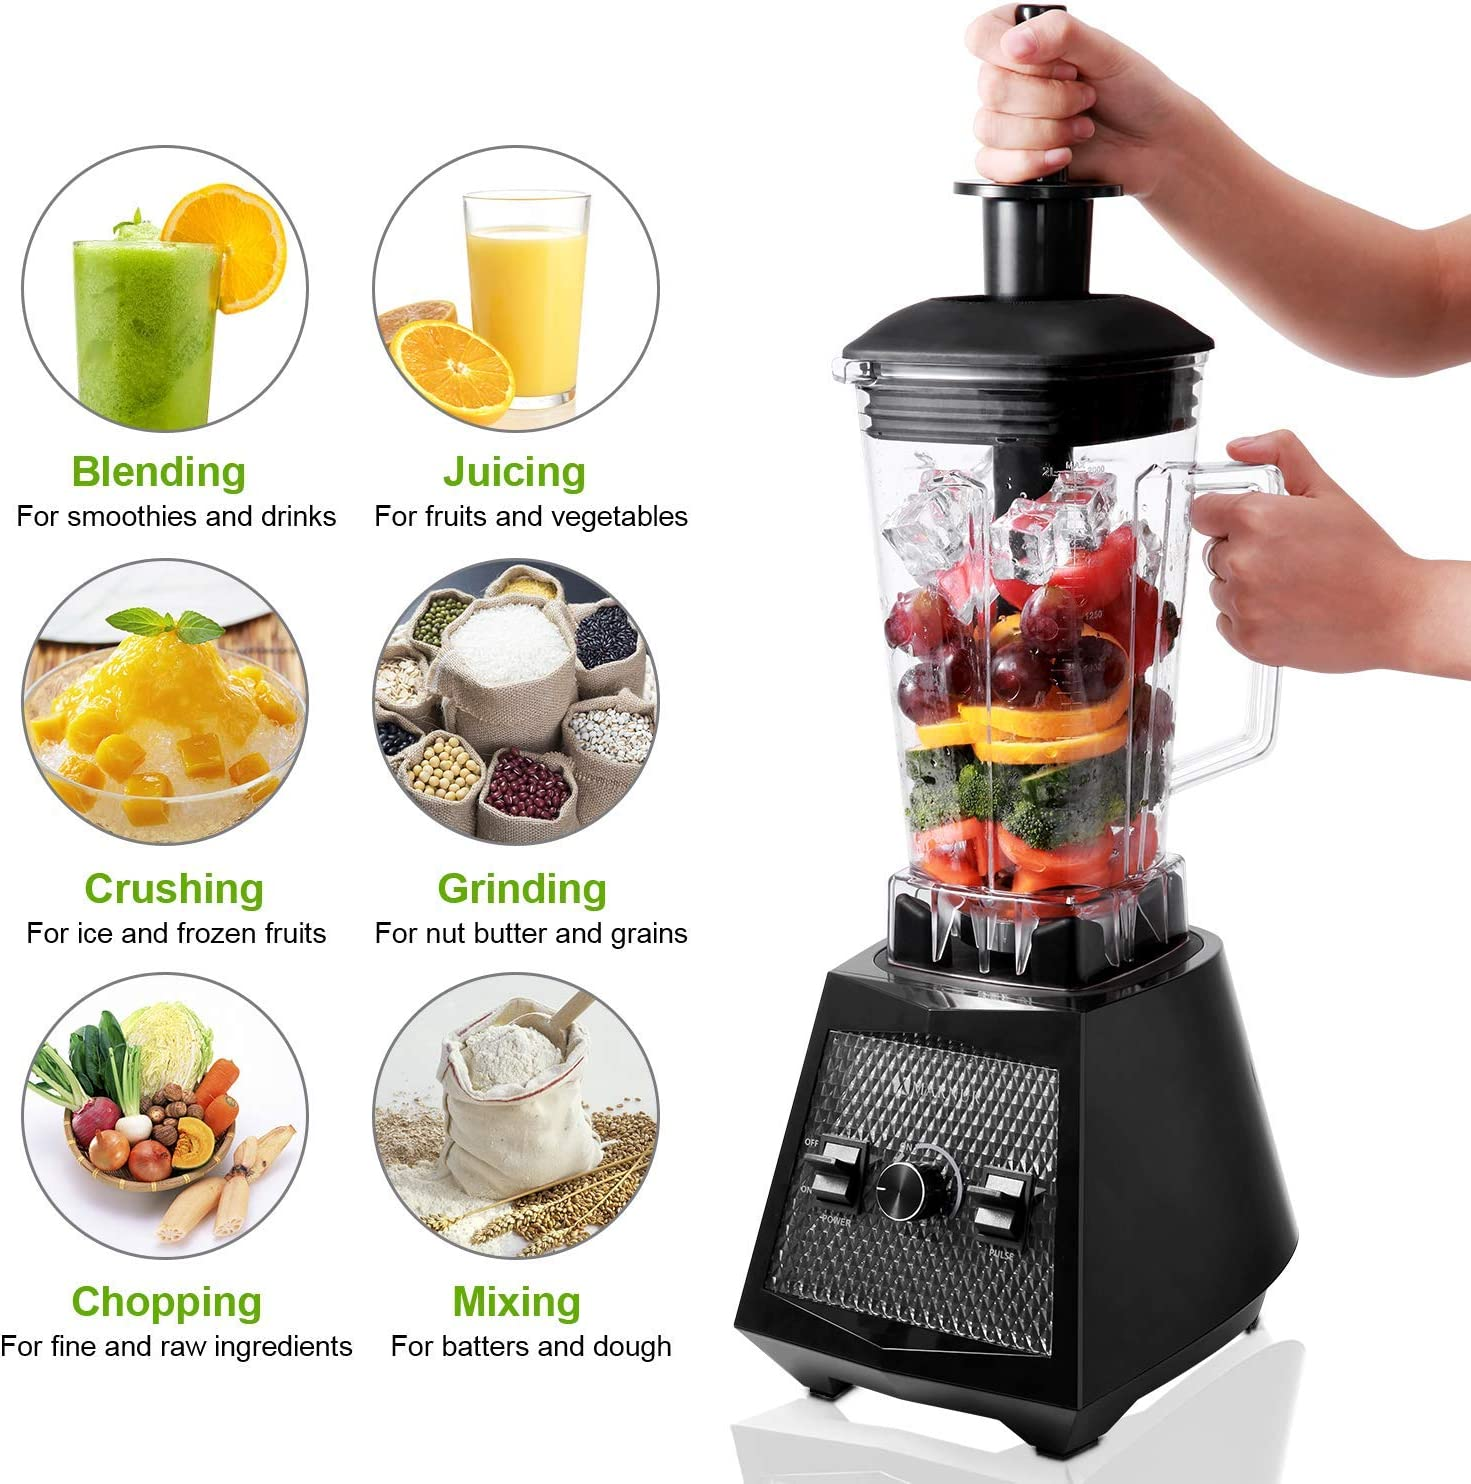 Amazon.com: Smoothie Blenders, 1500W Smoothie Maker, 2L ...